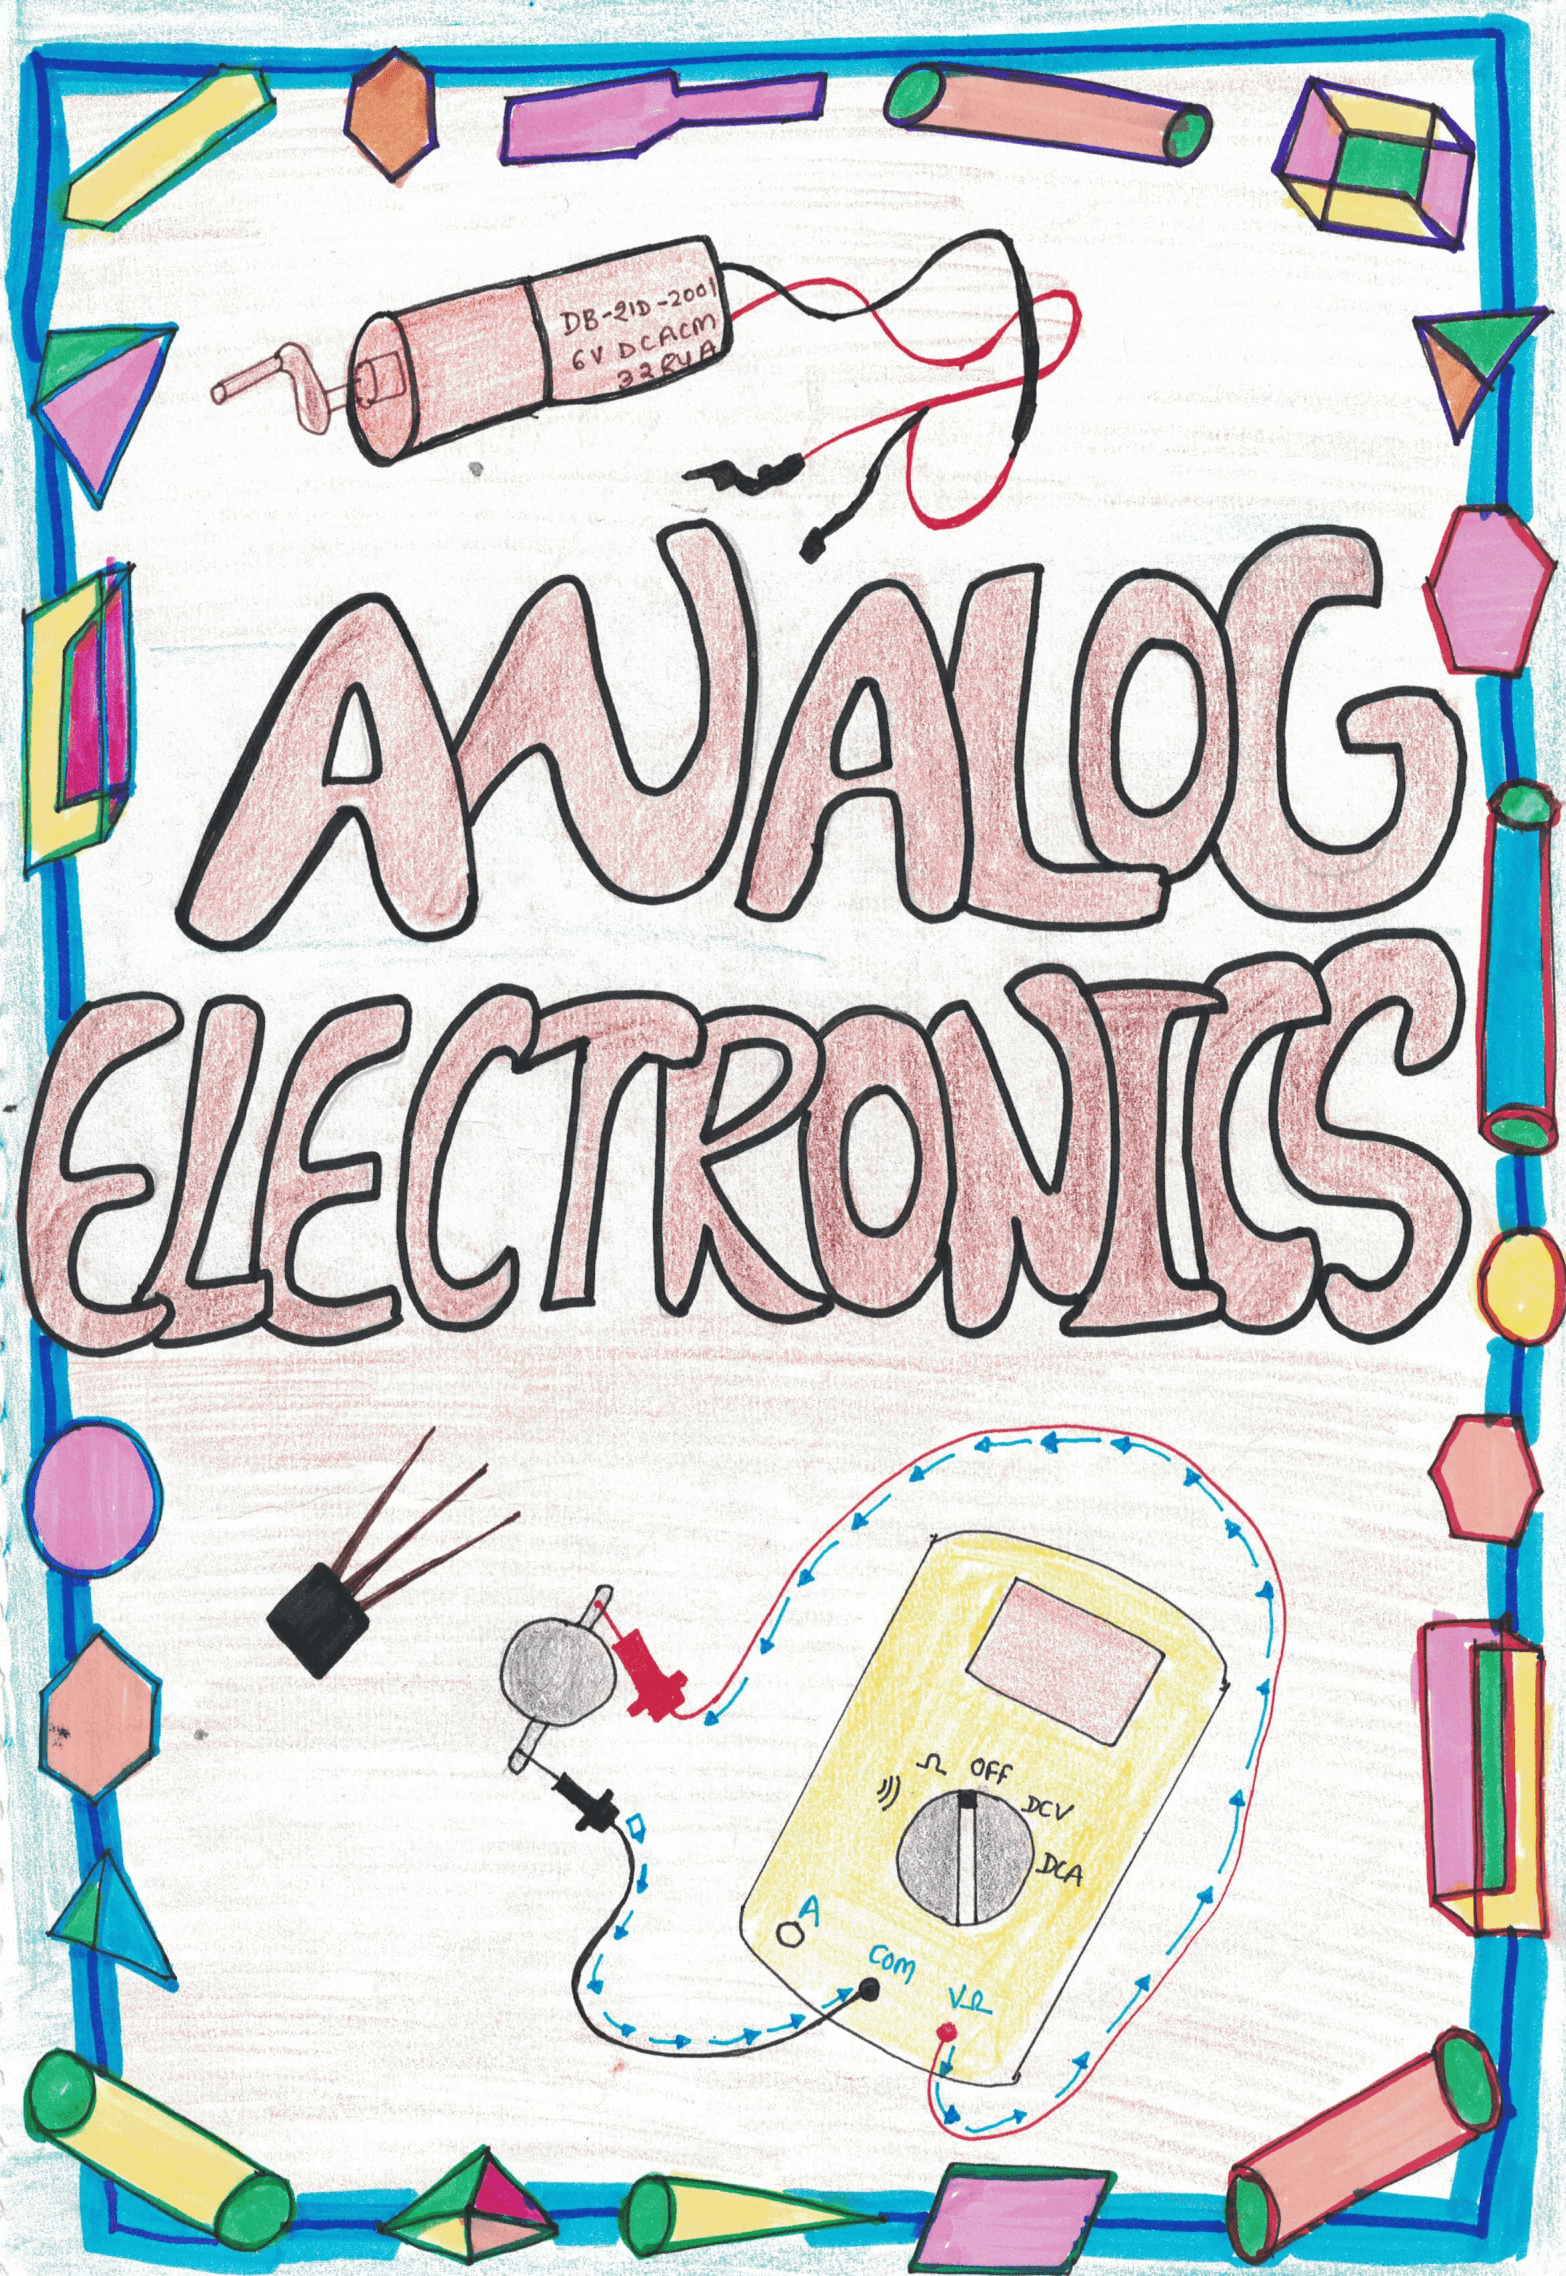 analog electronics handwritten notes pdf for gate & ies